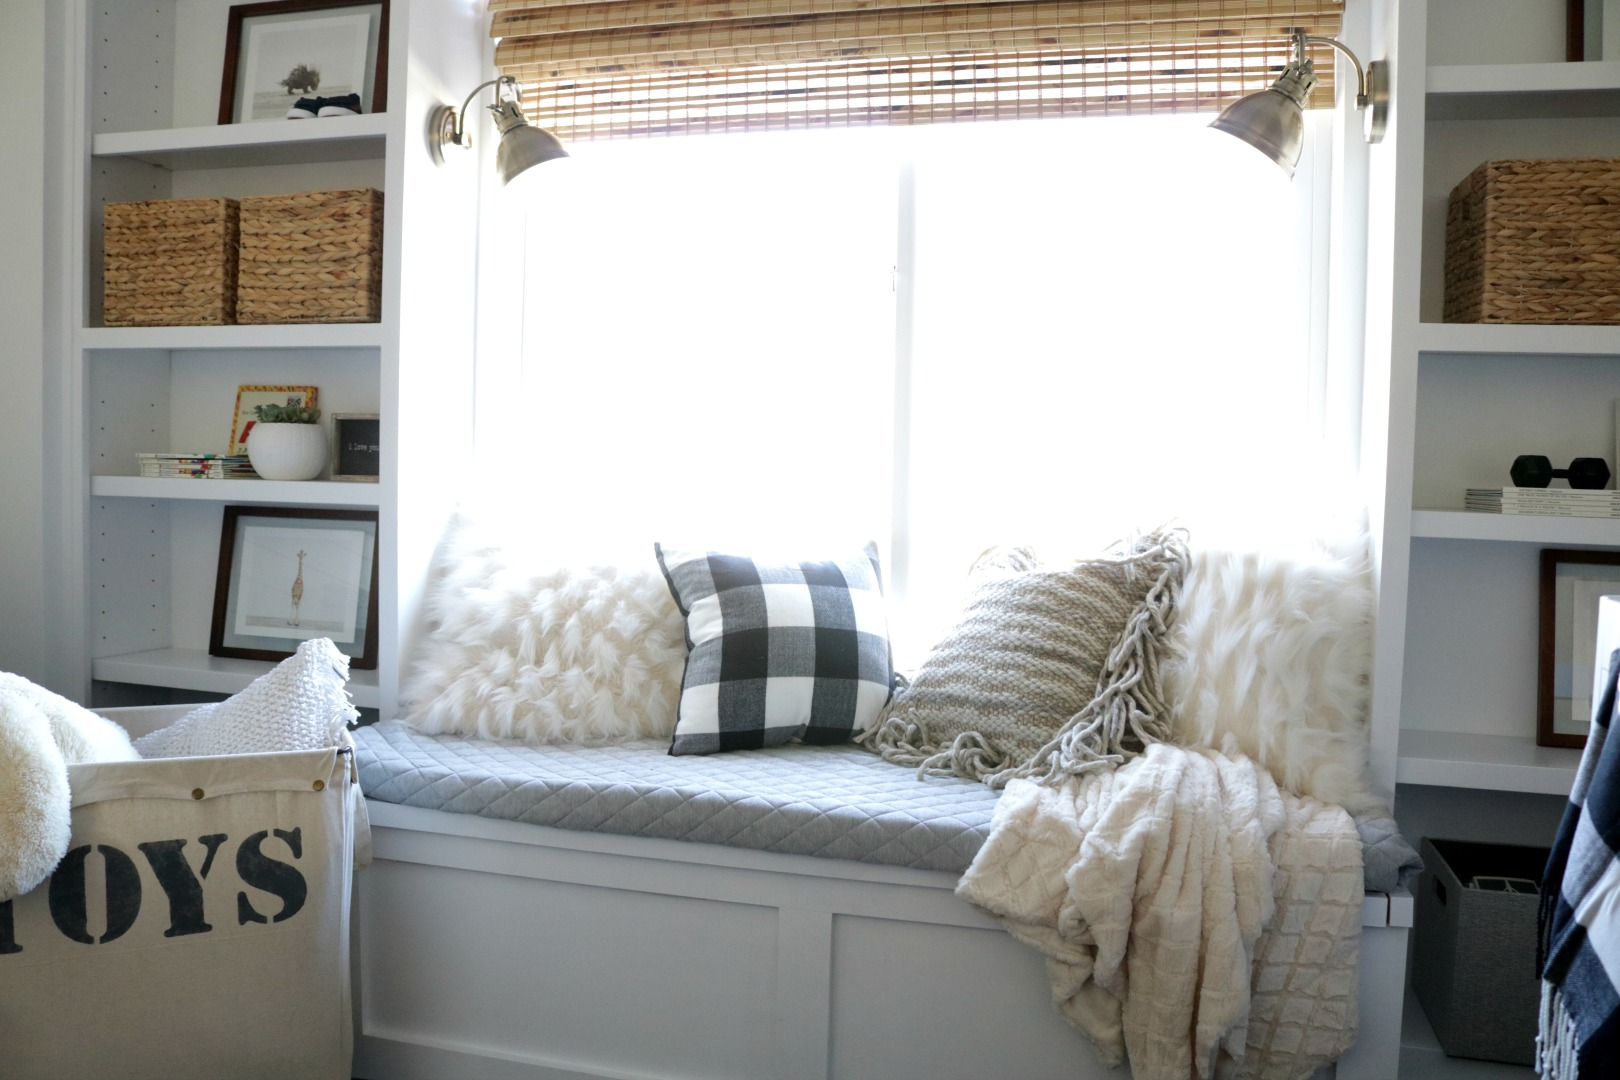 How To Build A Window Seat And Built In Bookcase Tutorial